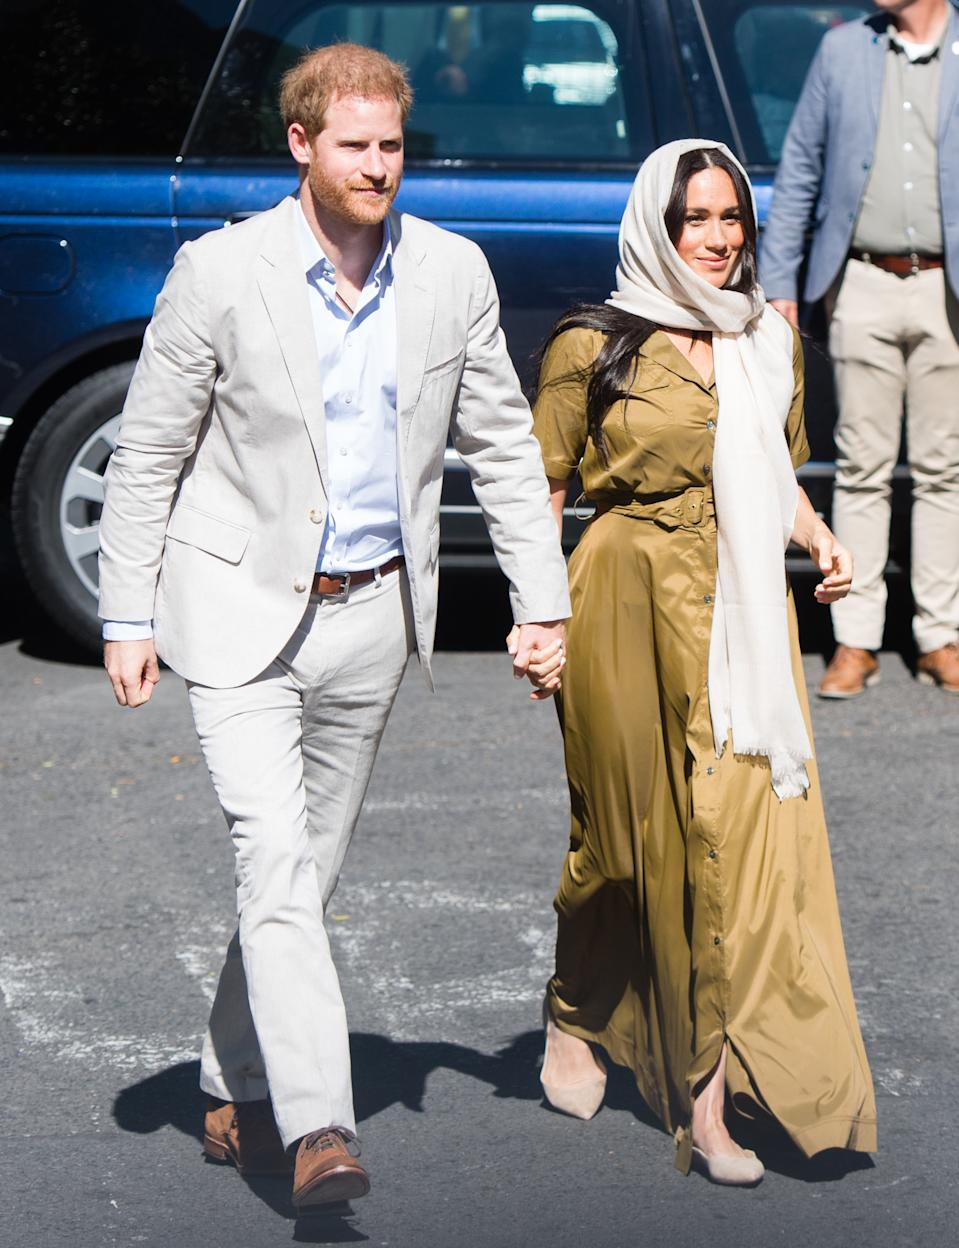 CAPE TOWN, SOUTH AFRICA - SEPTEMBER 24: Prince Harry, Duke of Sussex and Meghan, Duchess of Sussex visit Auwal Mosque in the Bo-Kaap neighbourhood with Prince Harry, Duke of Sussex, during their royal tour of South Africa on September 24, 2019 in Cape Town, South Africa. Auwal Mosque, the oldest mosque in South Africa, built in 1794.  (Photo by Samir Hussein/WireImage)